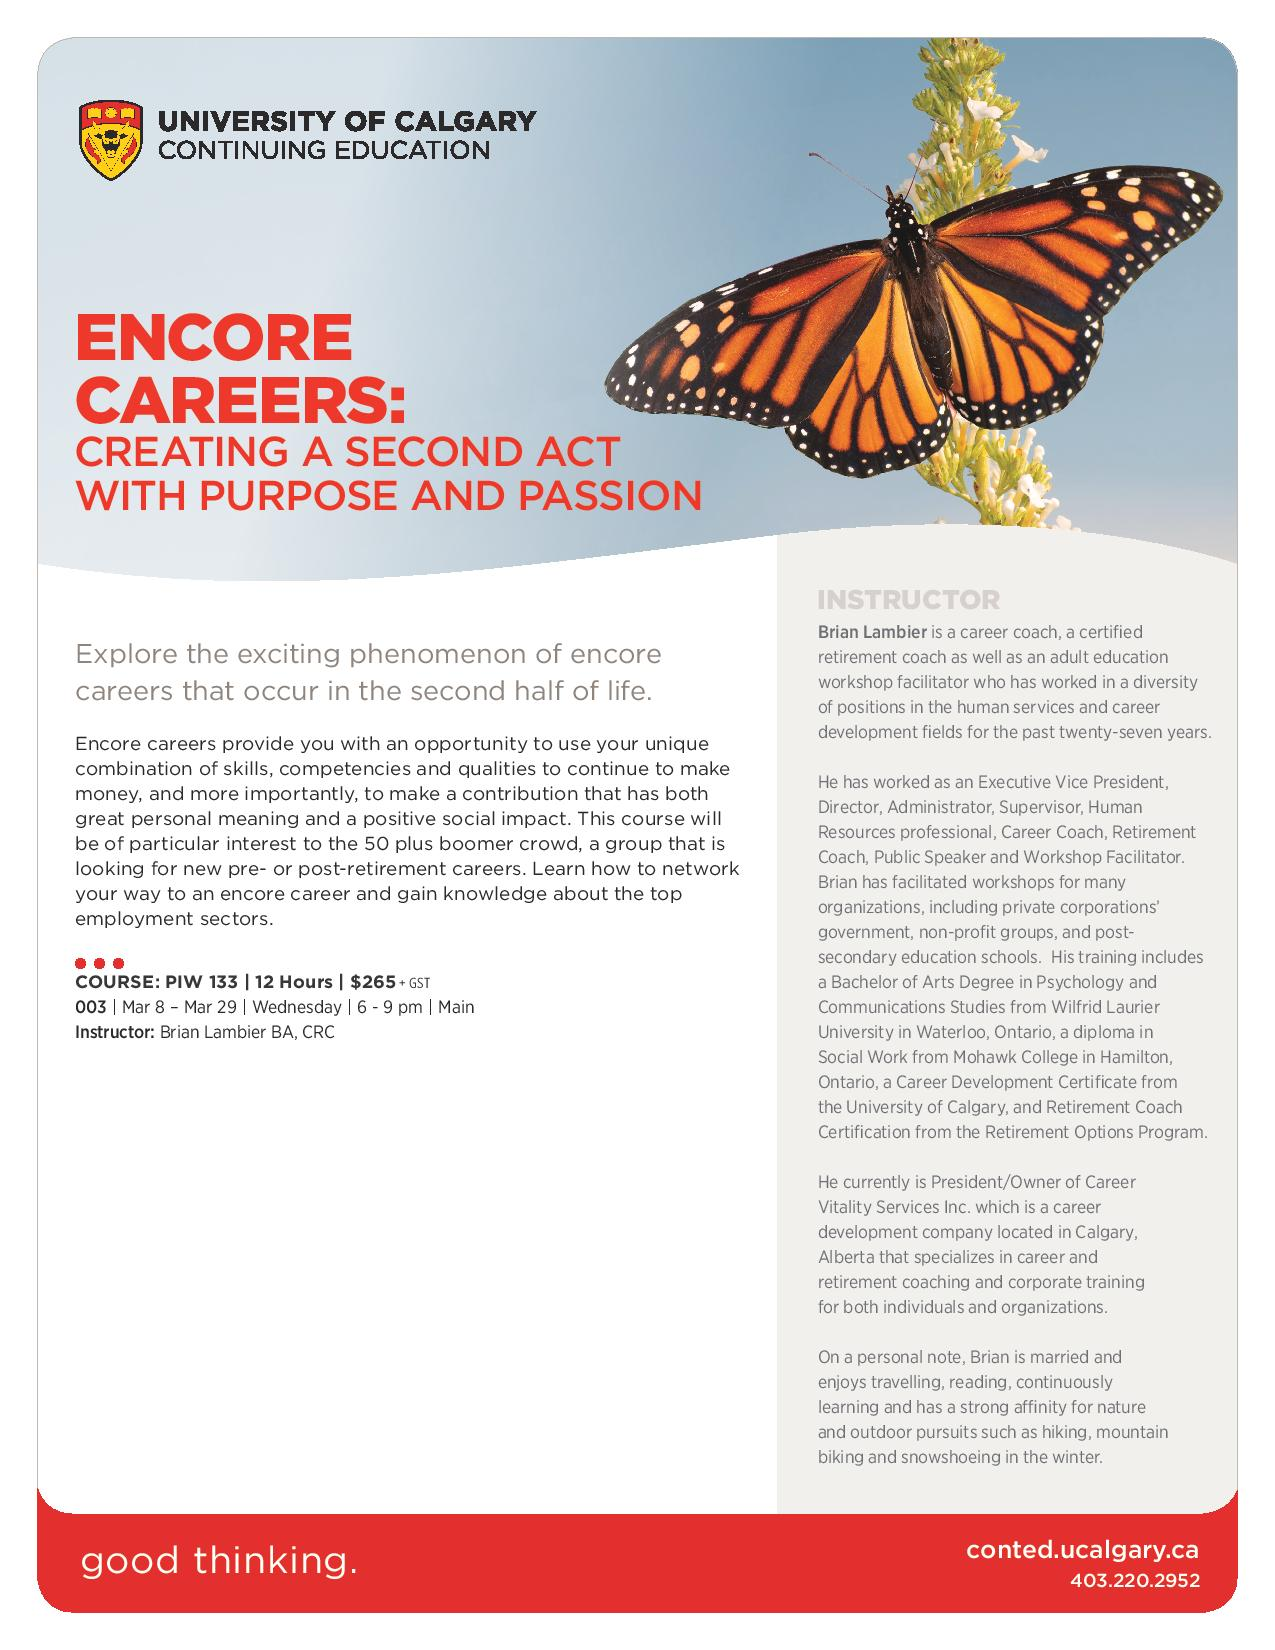 2017_PIW_133_Encore_Careers_Flyer-page-001.jpg